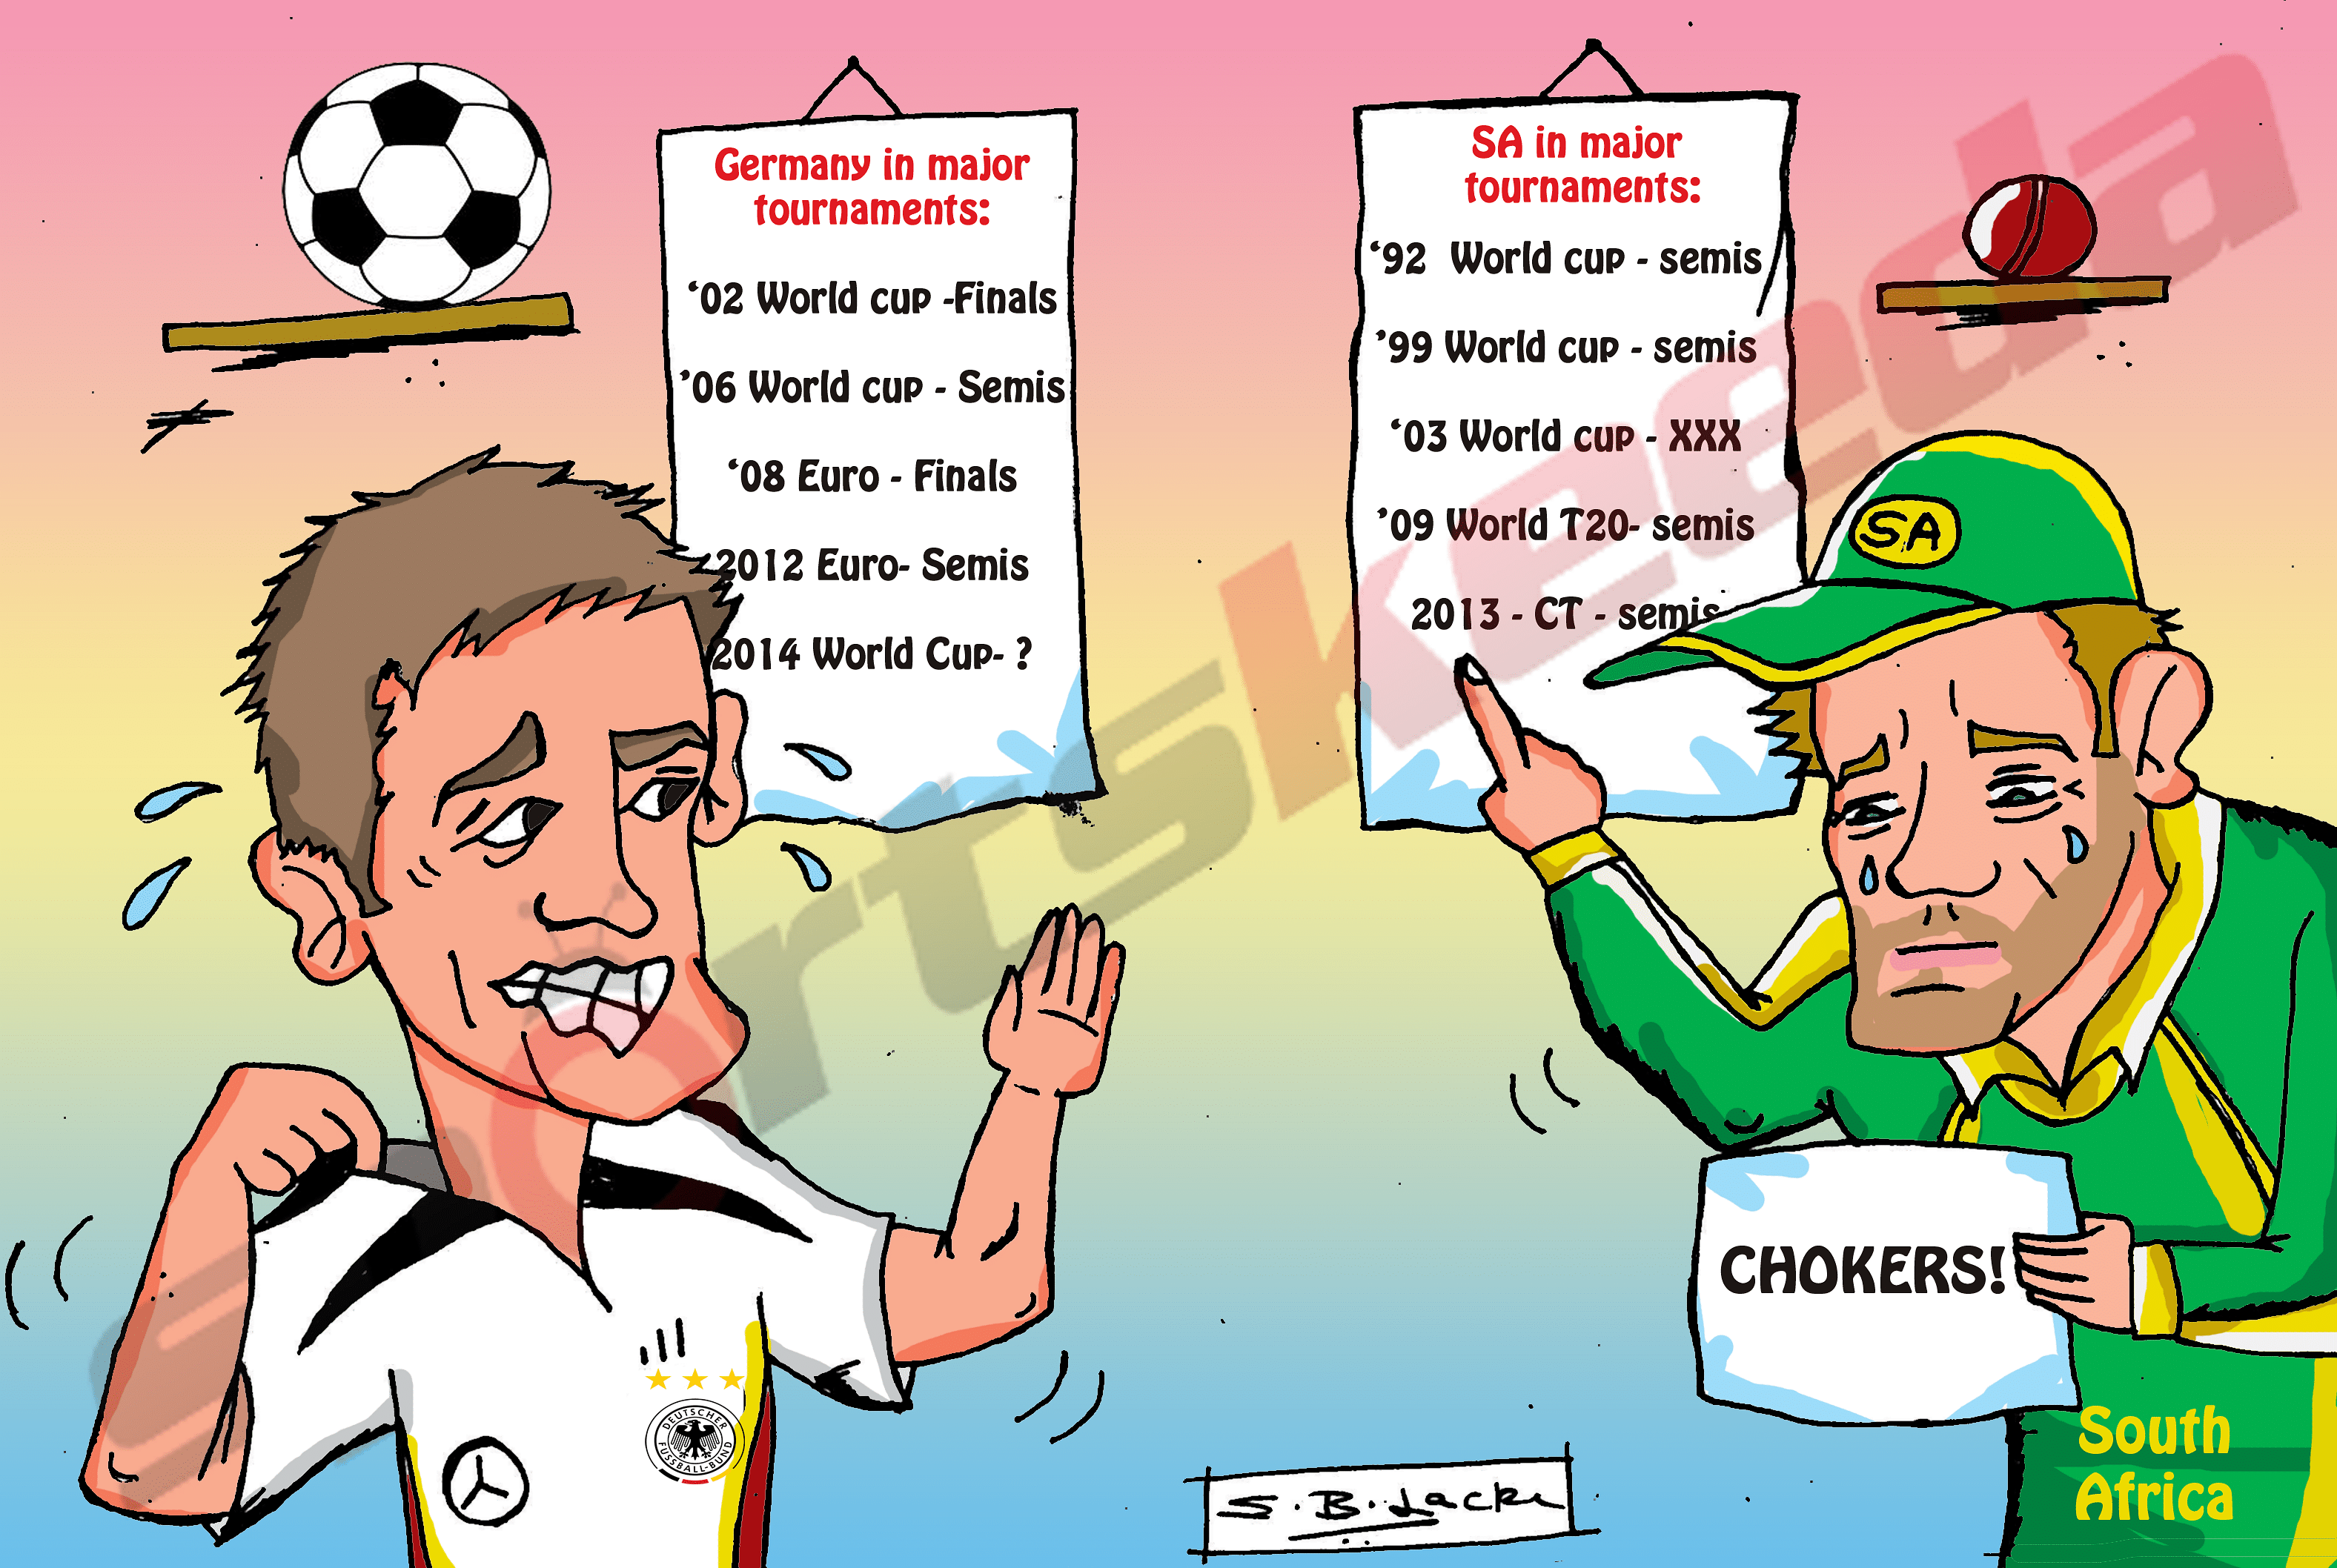 Teams that choke on the biggest stage in World Sport